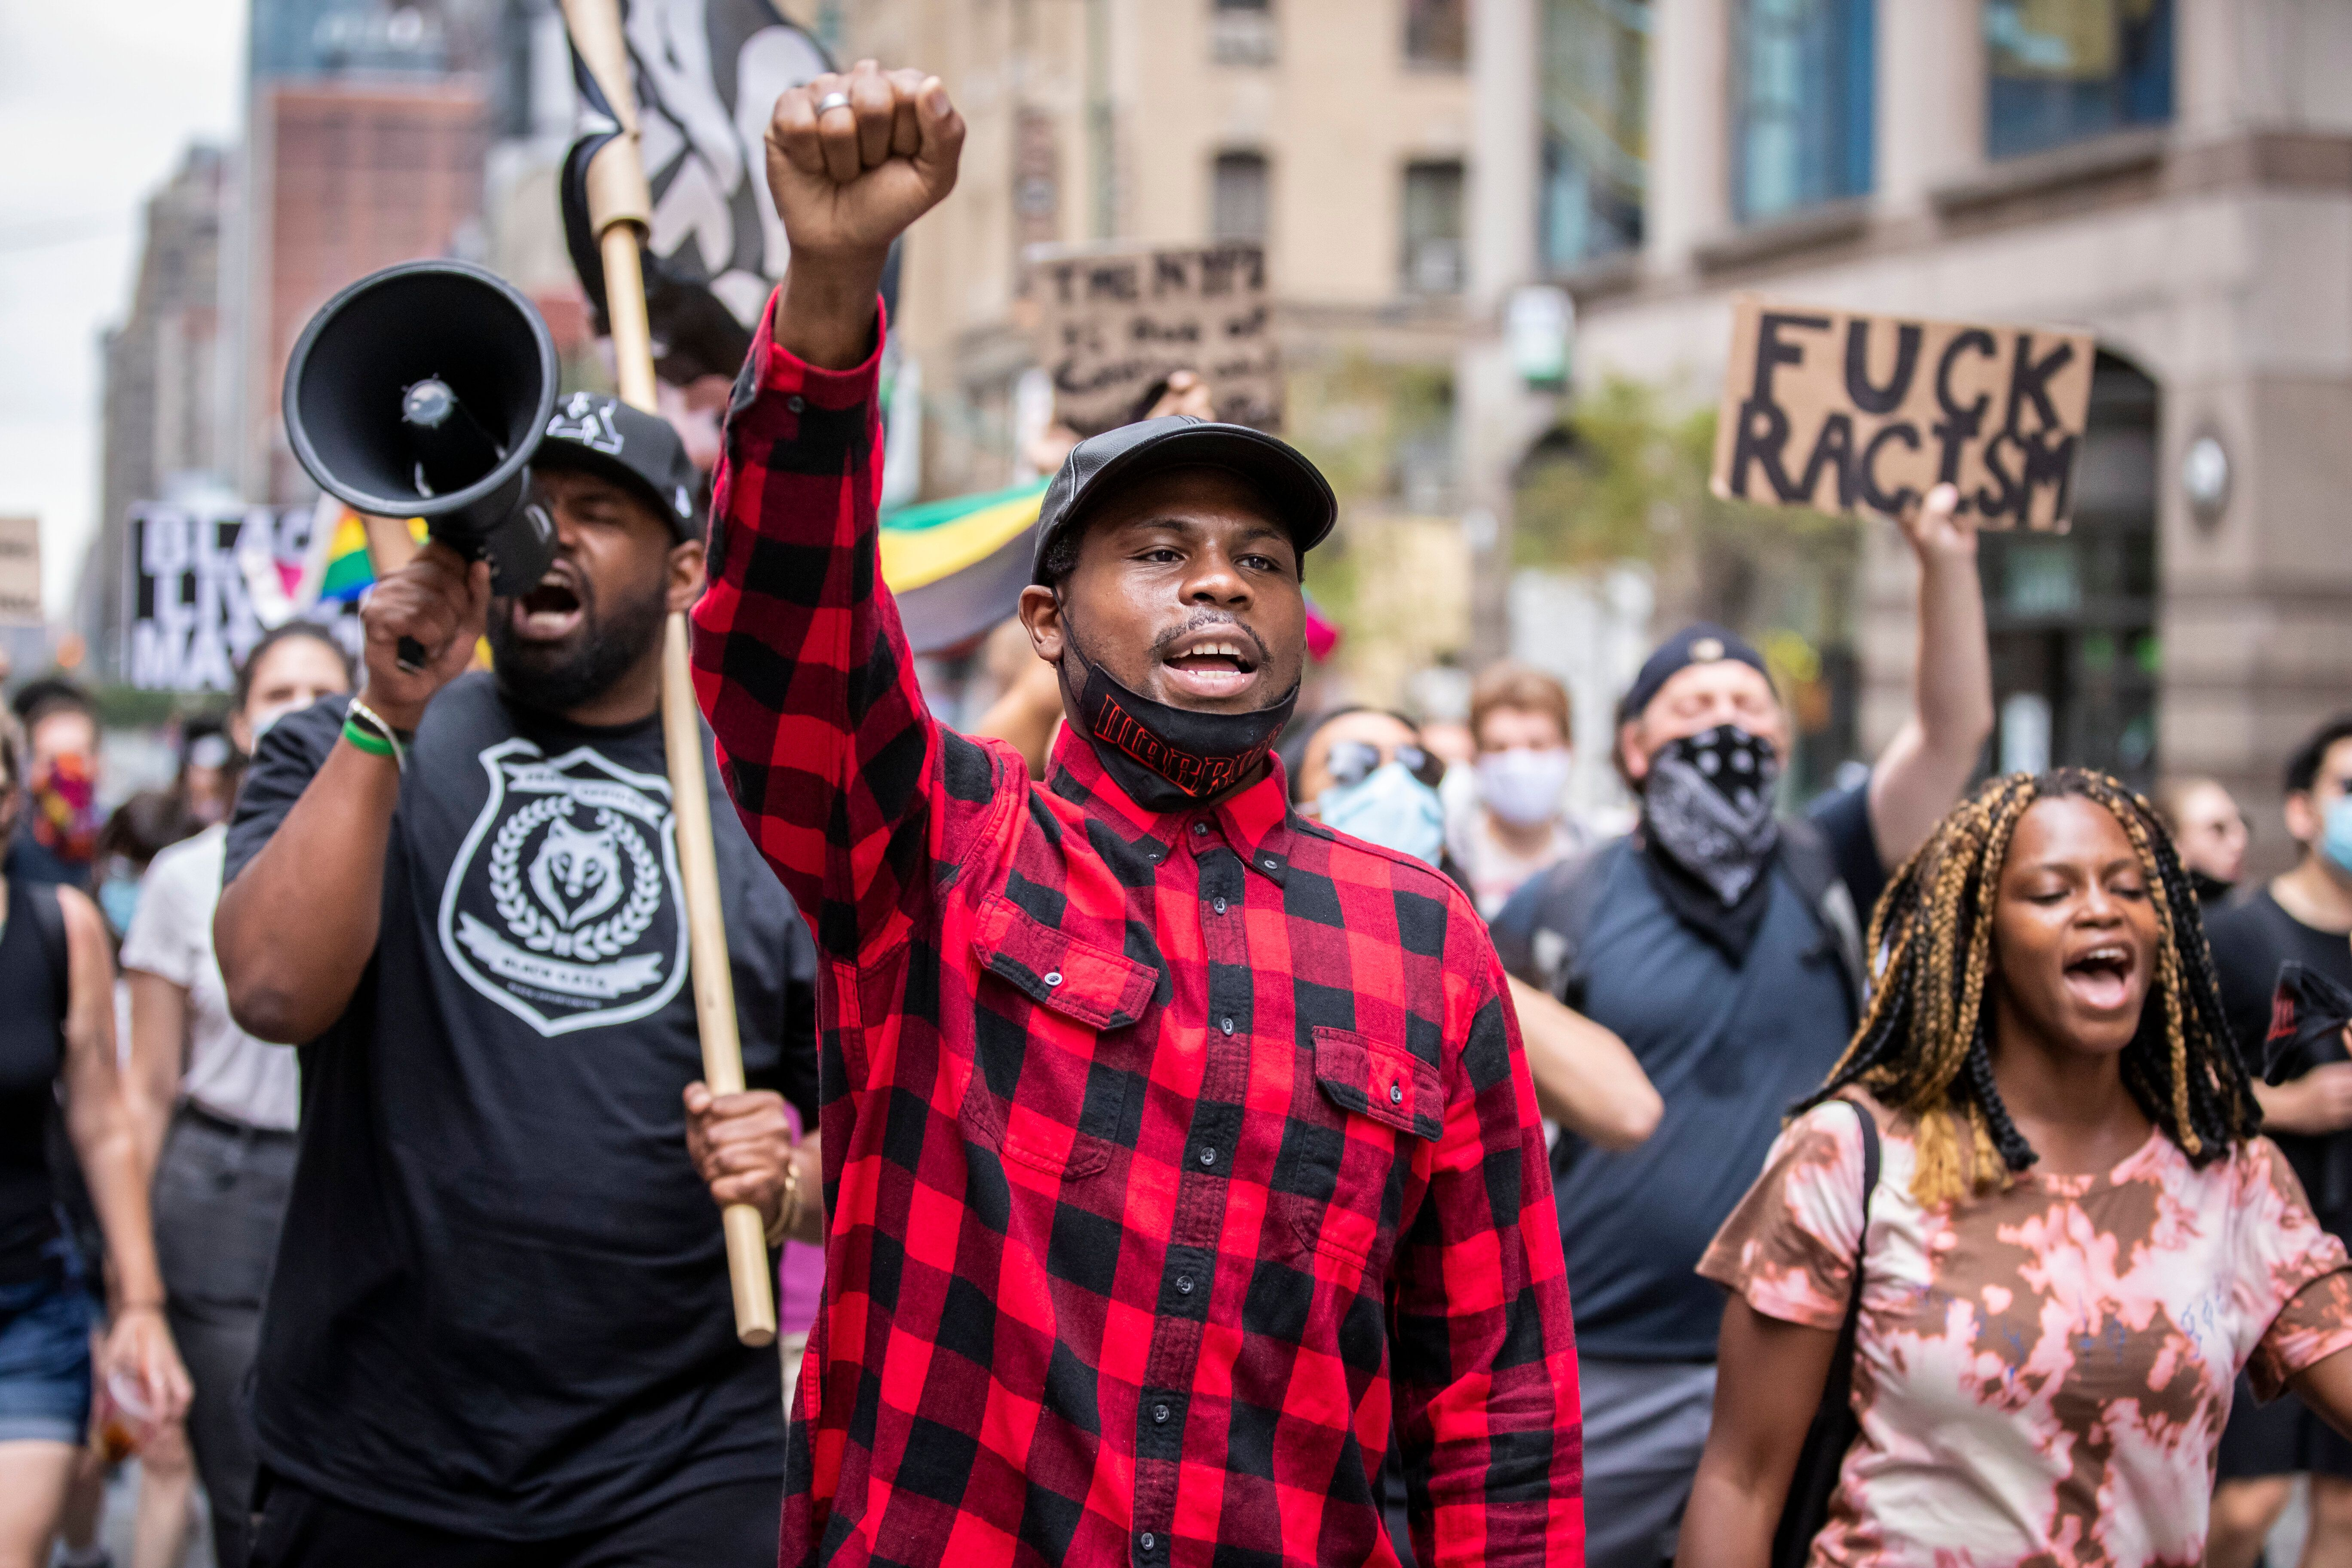 Black Lives Matter protesters march in New York City in August. Proponents of police reform fear losing ground amid rising cr